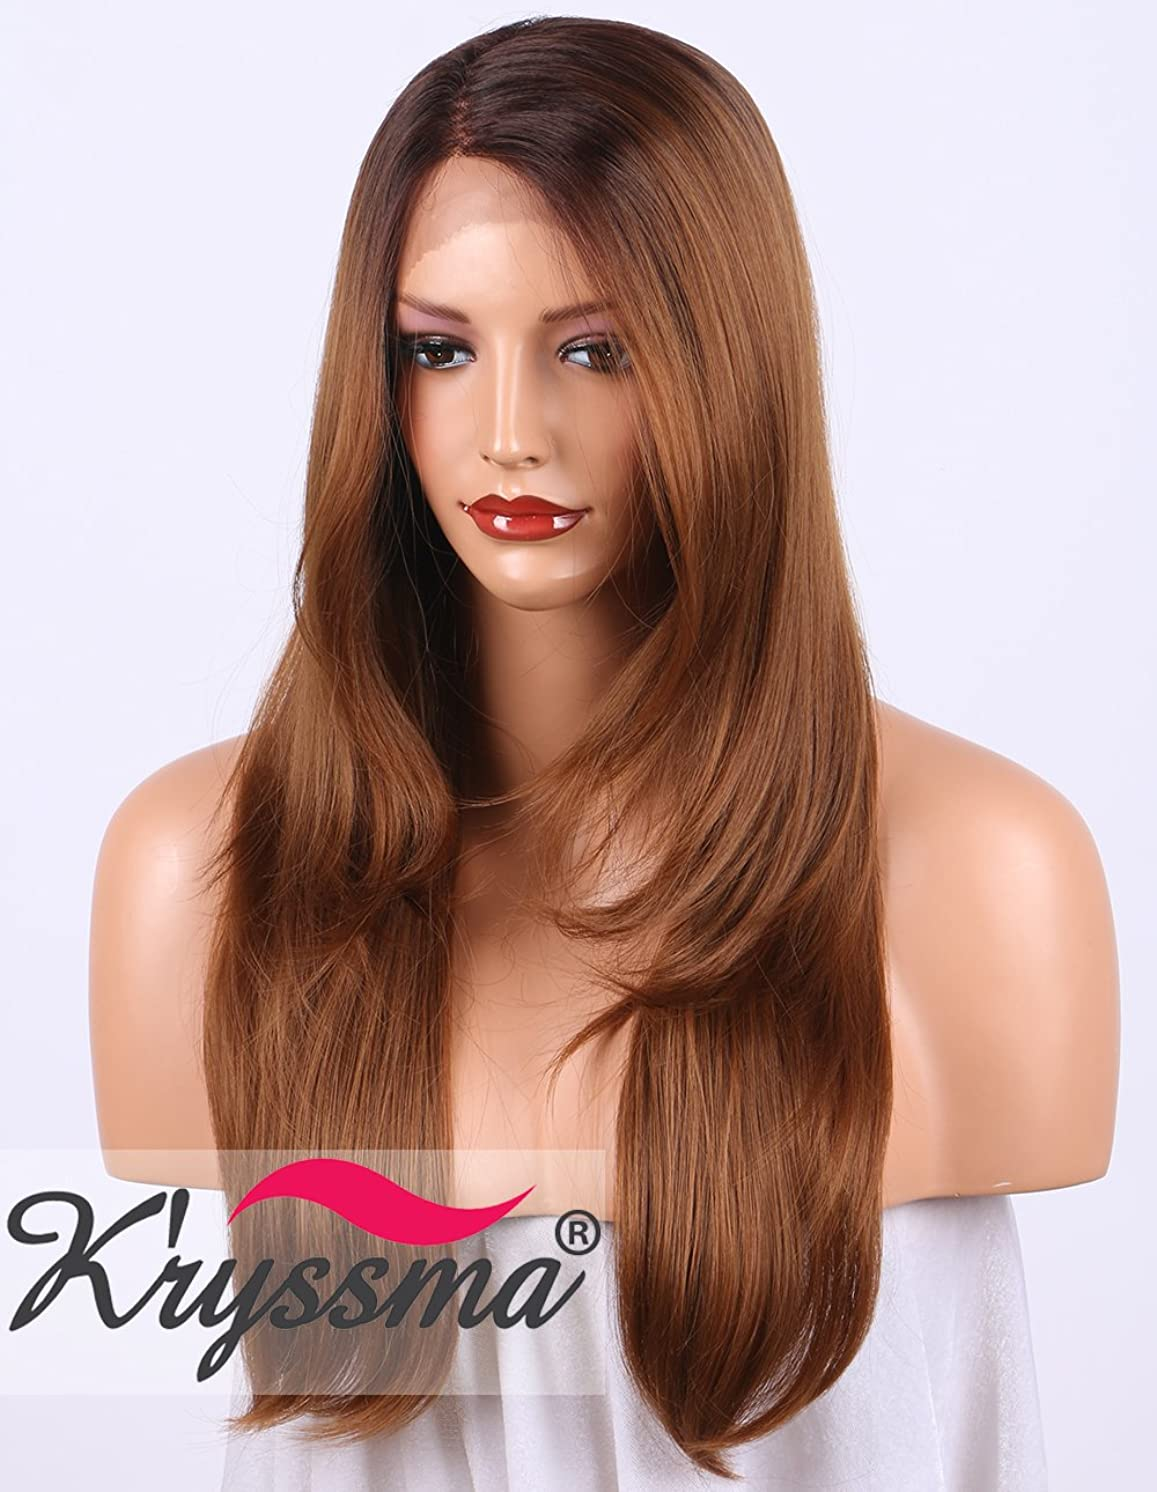 K'ryssma Long Natural Straight Ombre Synthetic Lace Front Wigs with Bangs, 2 Tones Dark Roots #4 to Brown #30 L Part Wig with Deep Side Parting Glueless Synthetic Wig for Women 20 inch (KMLM005)